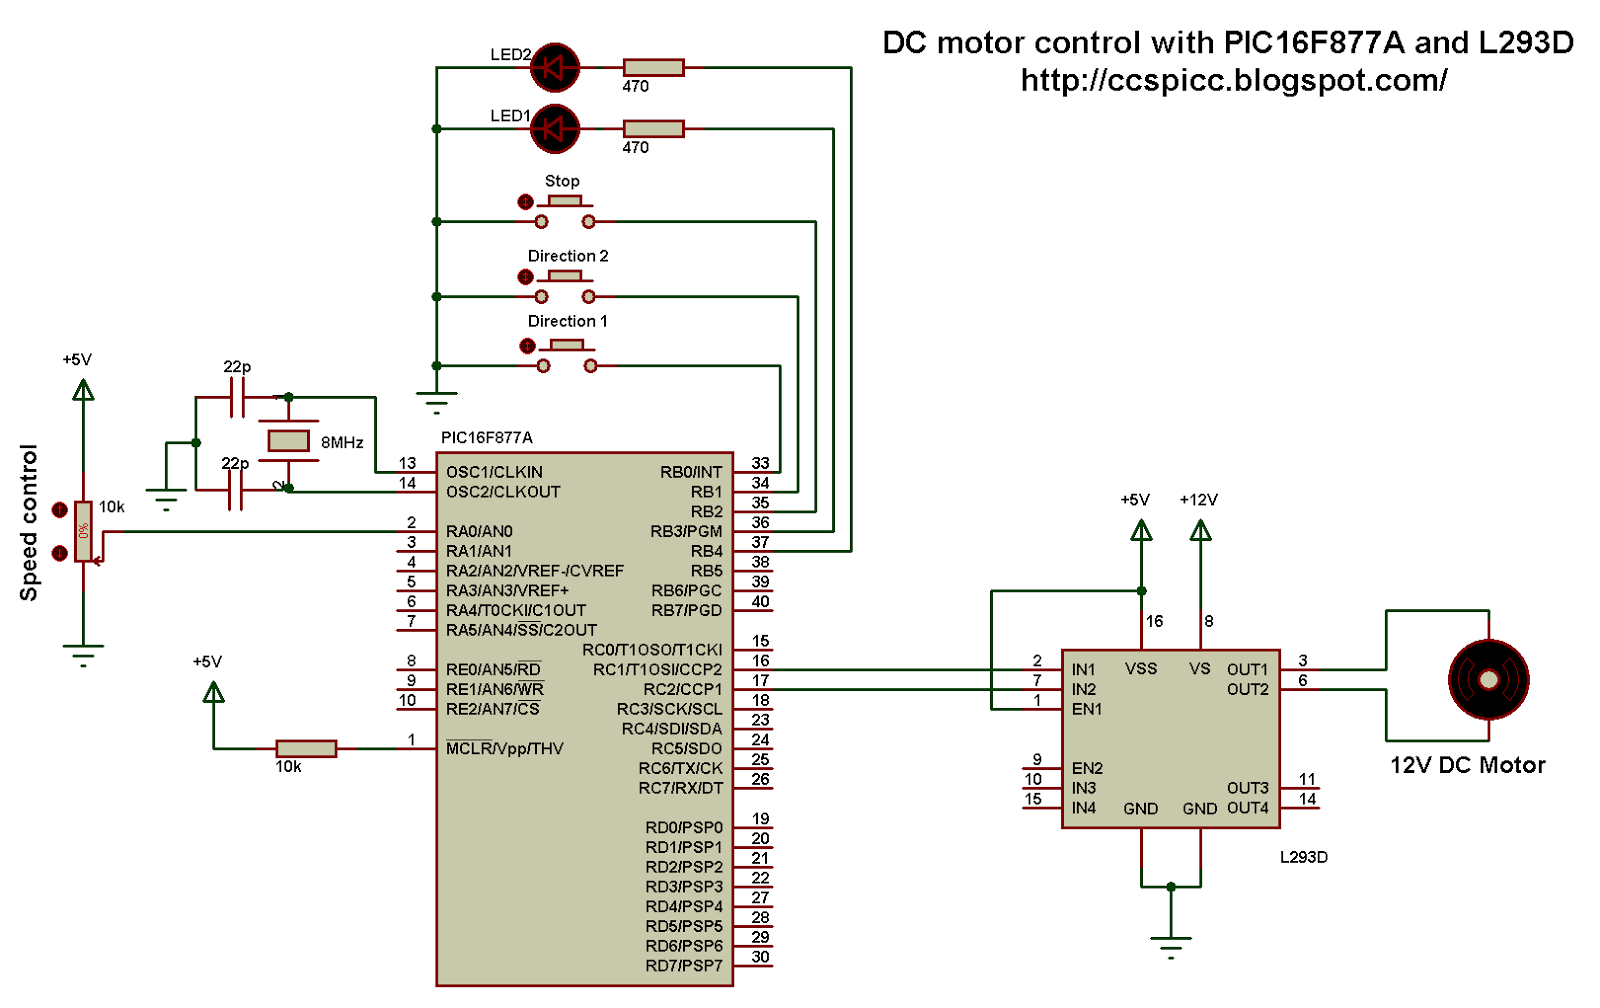 12v Led Circuit Diagram Pdf Quick Start Guide Of Wiring Light 9v Dc Motor Control With Pic16f877a And L293d Proteus Simulation